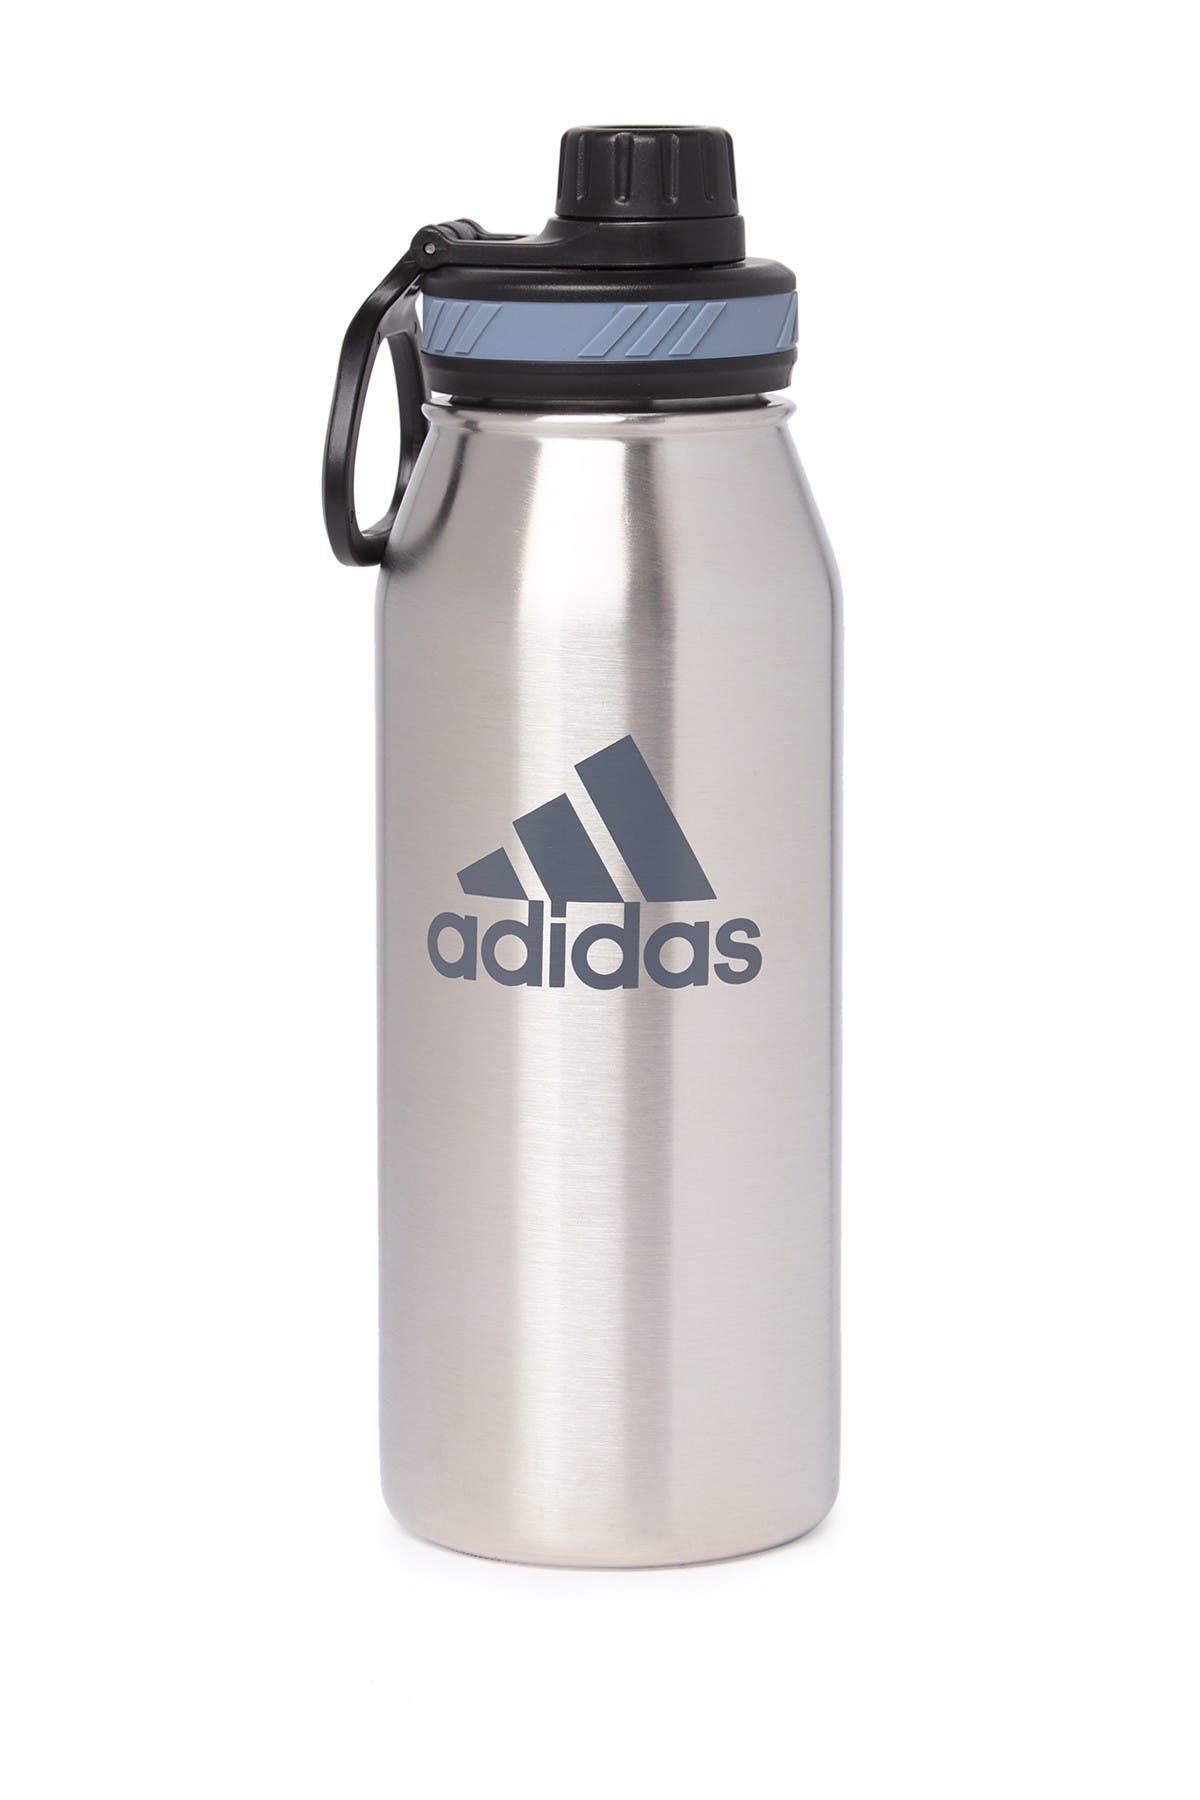 Image of adidas Stainless Steel 1L Metal Bottle